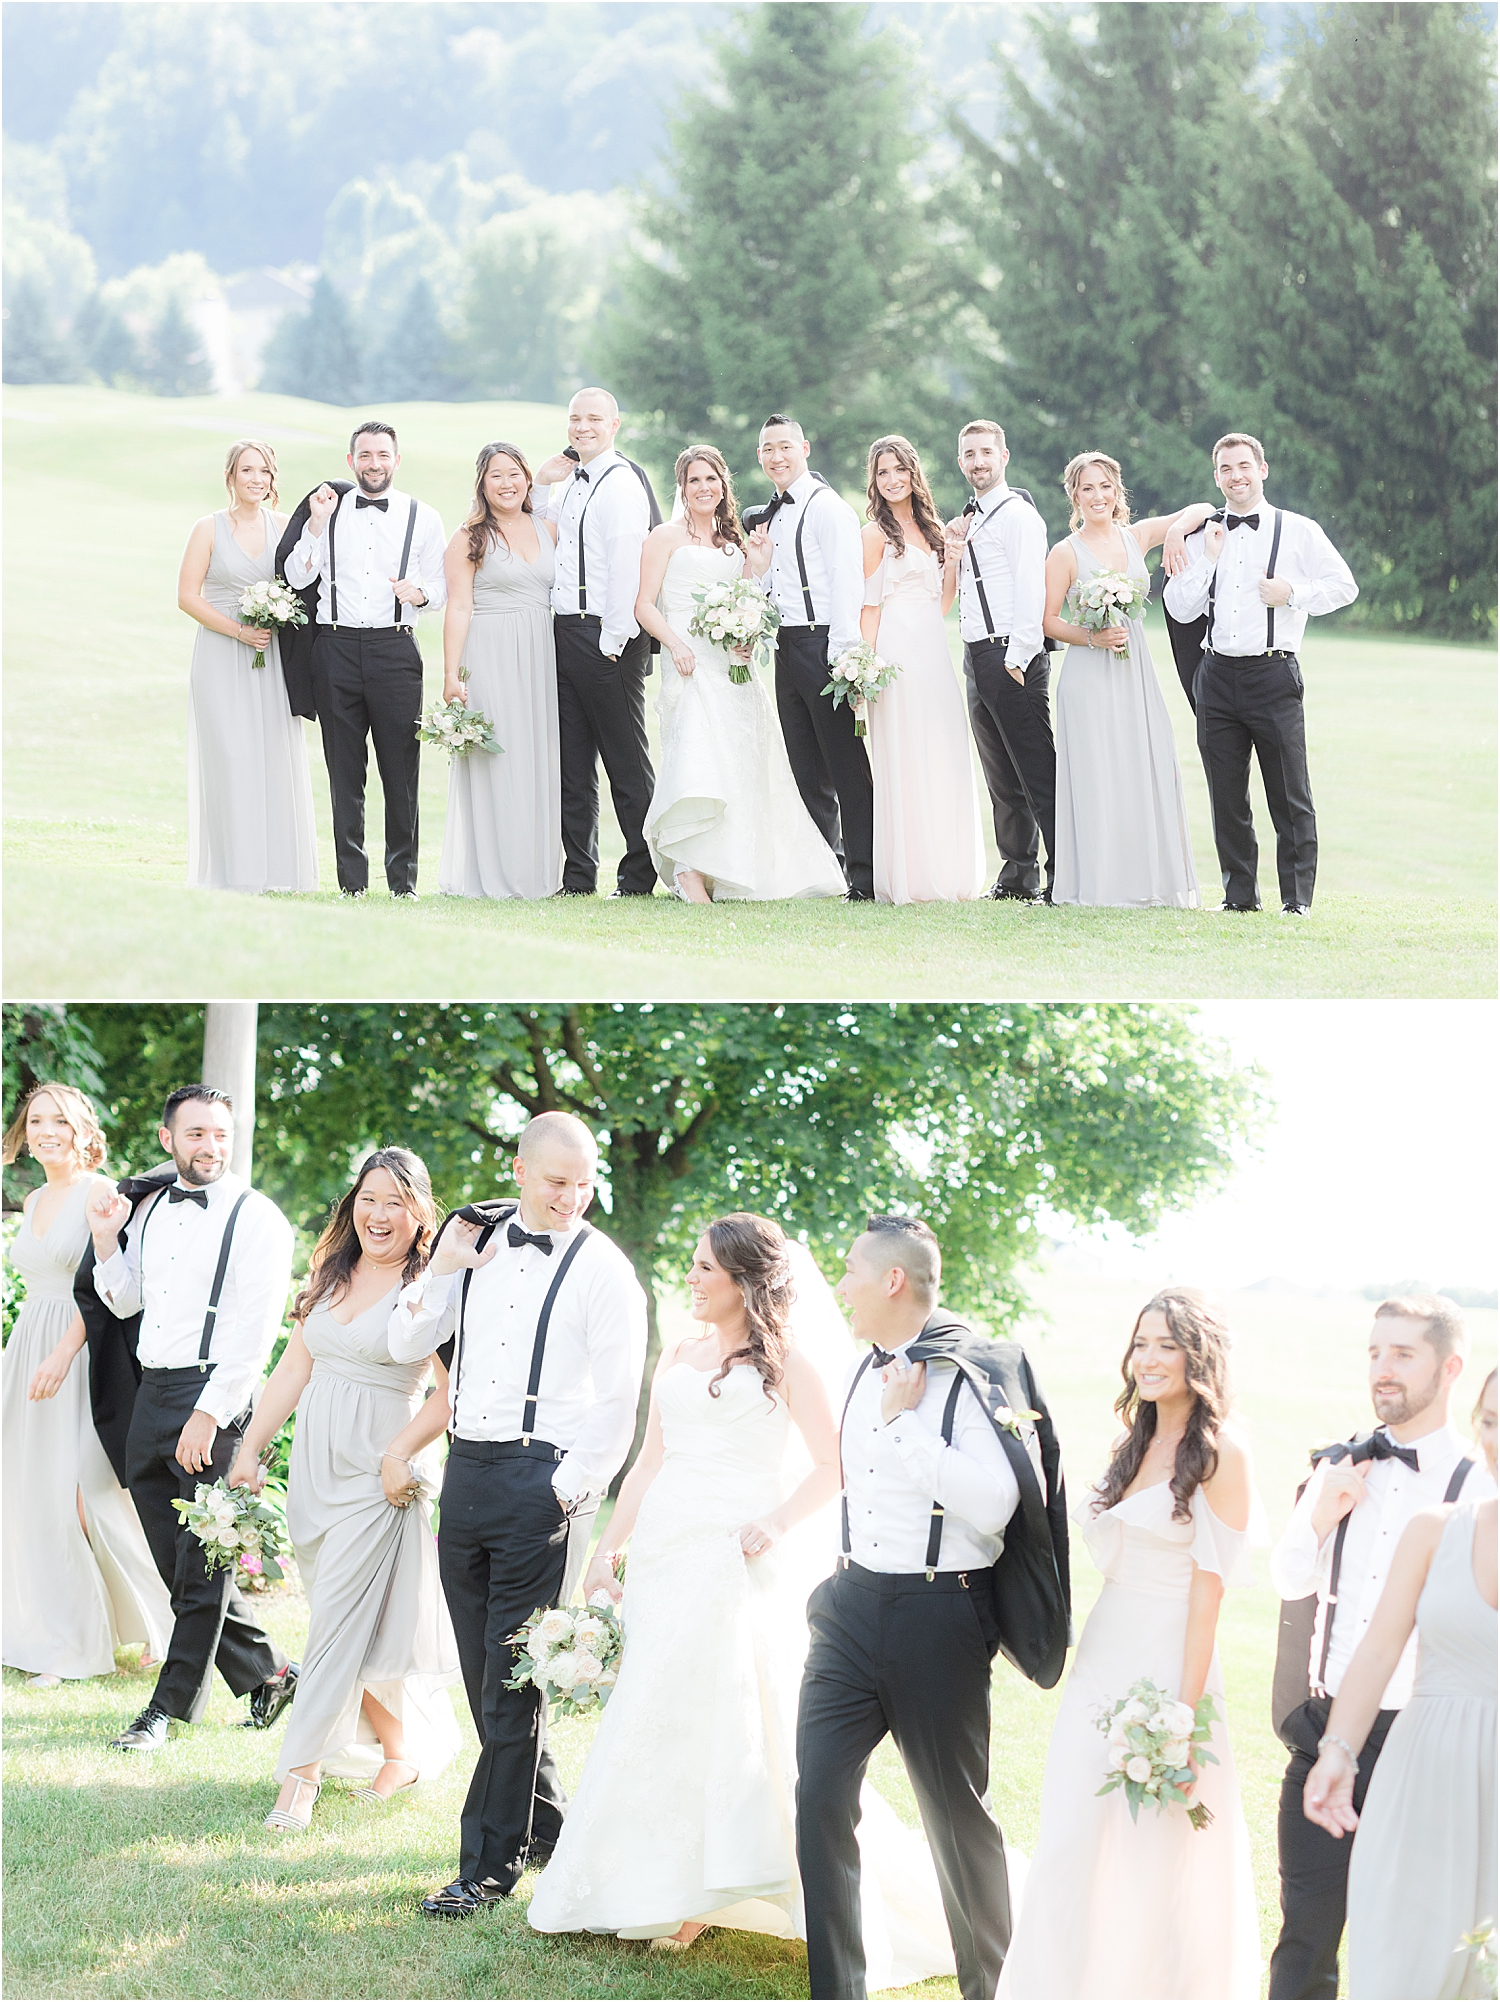 fun bridal party photo at Skyview Golf Club wedding in North Jersey